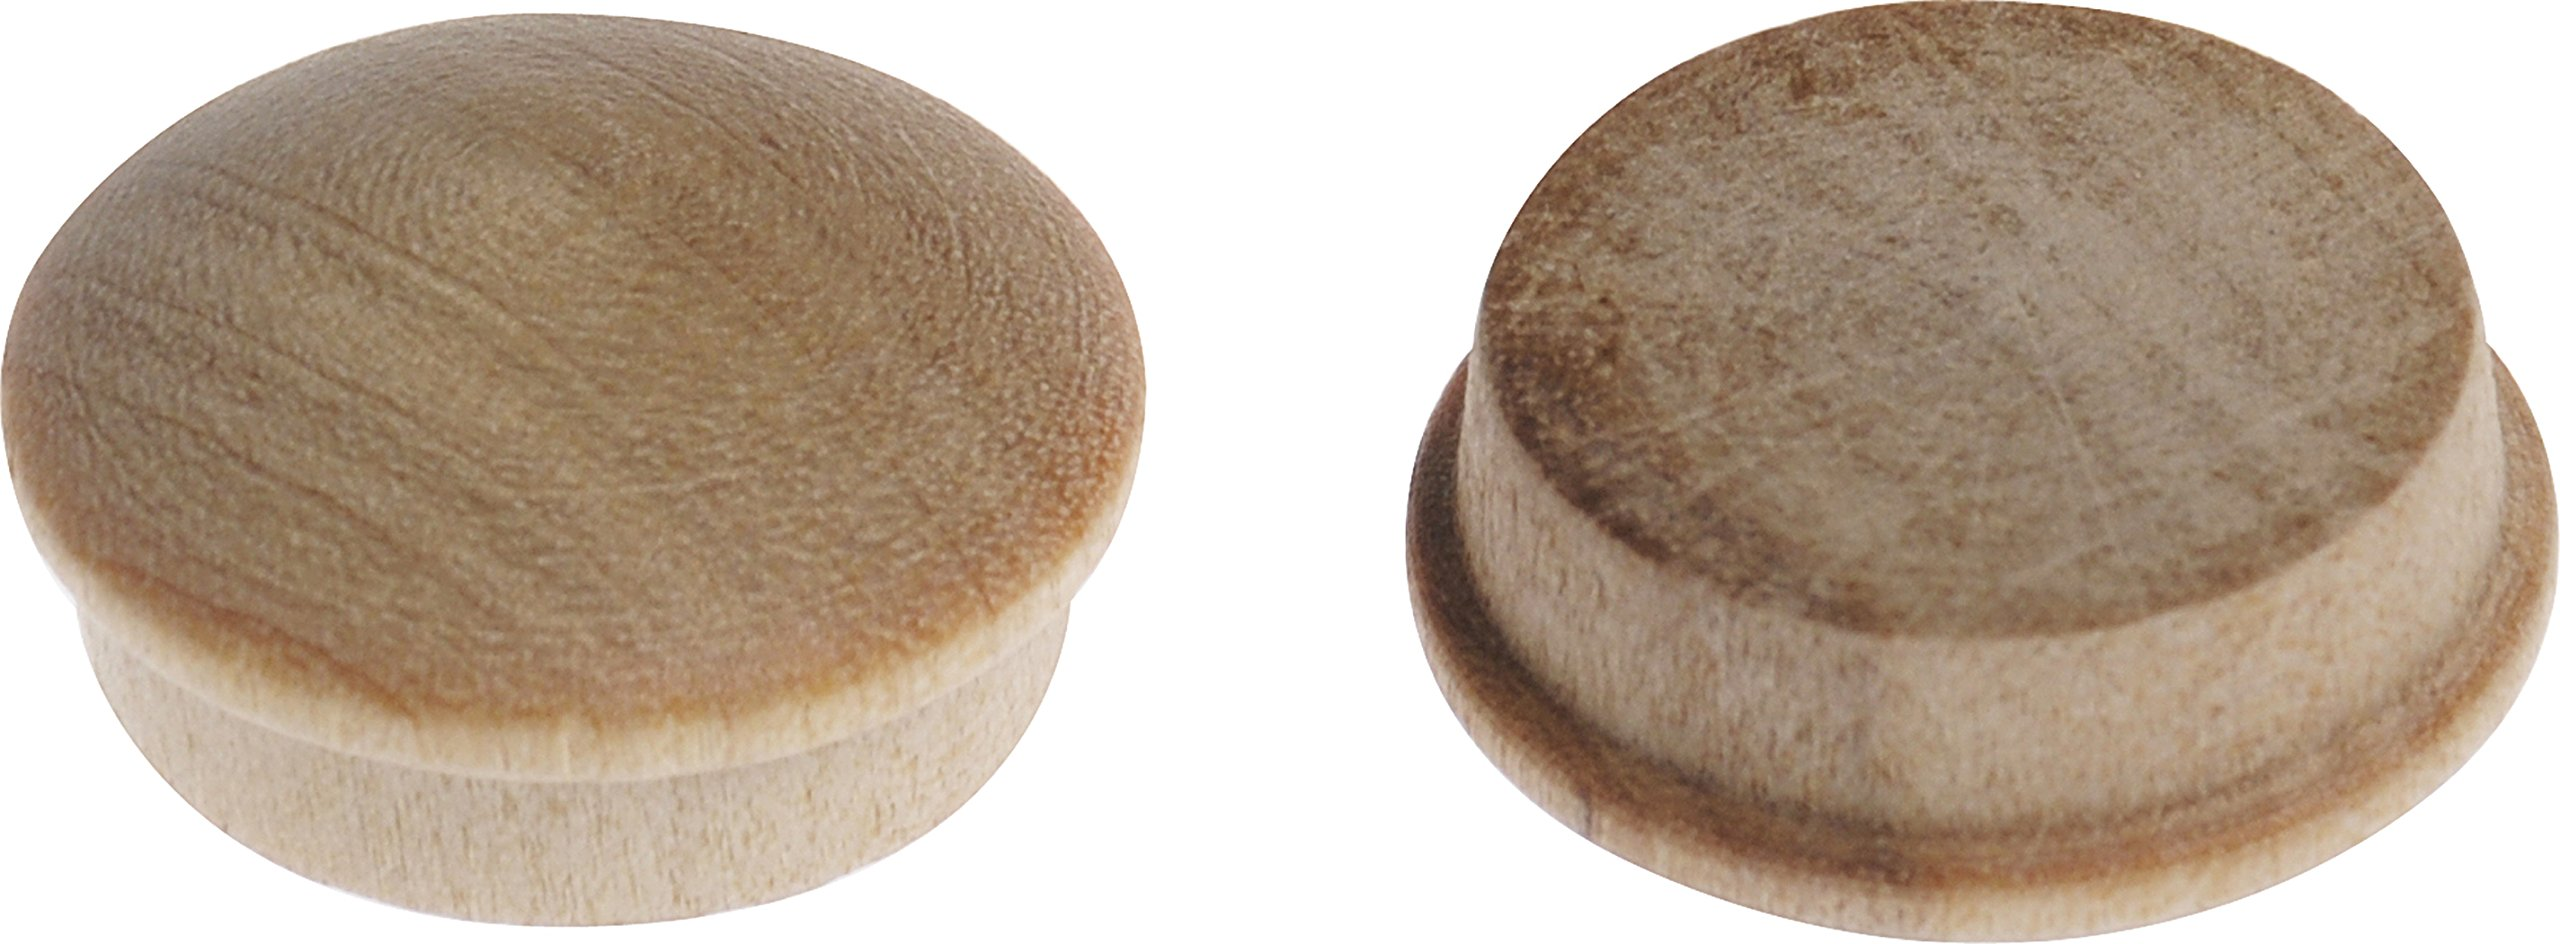 The Hillman Group 53017 Wooden Round Button, 3/4-Inch, 25-Pack